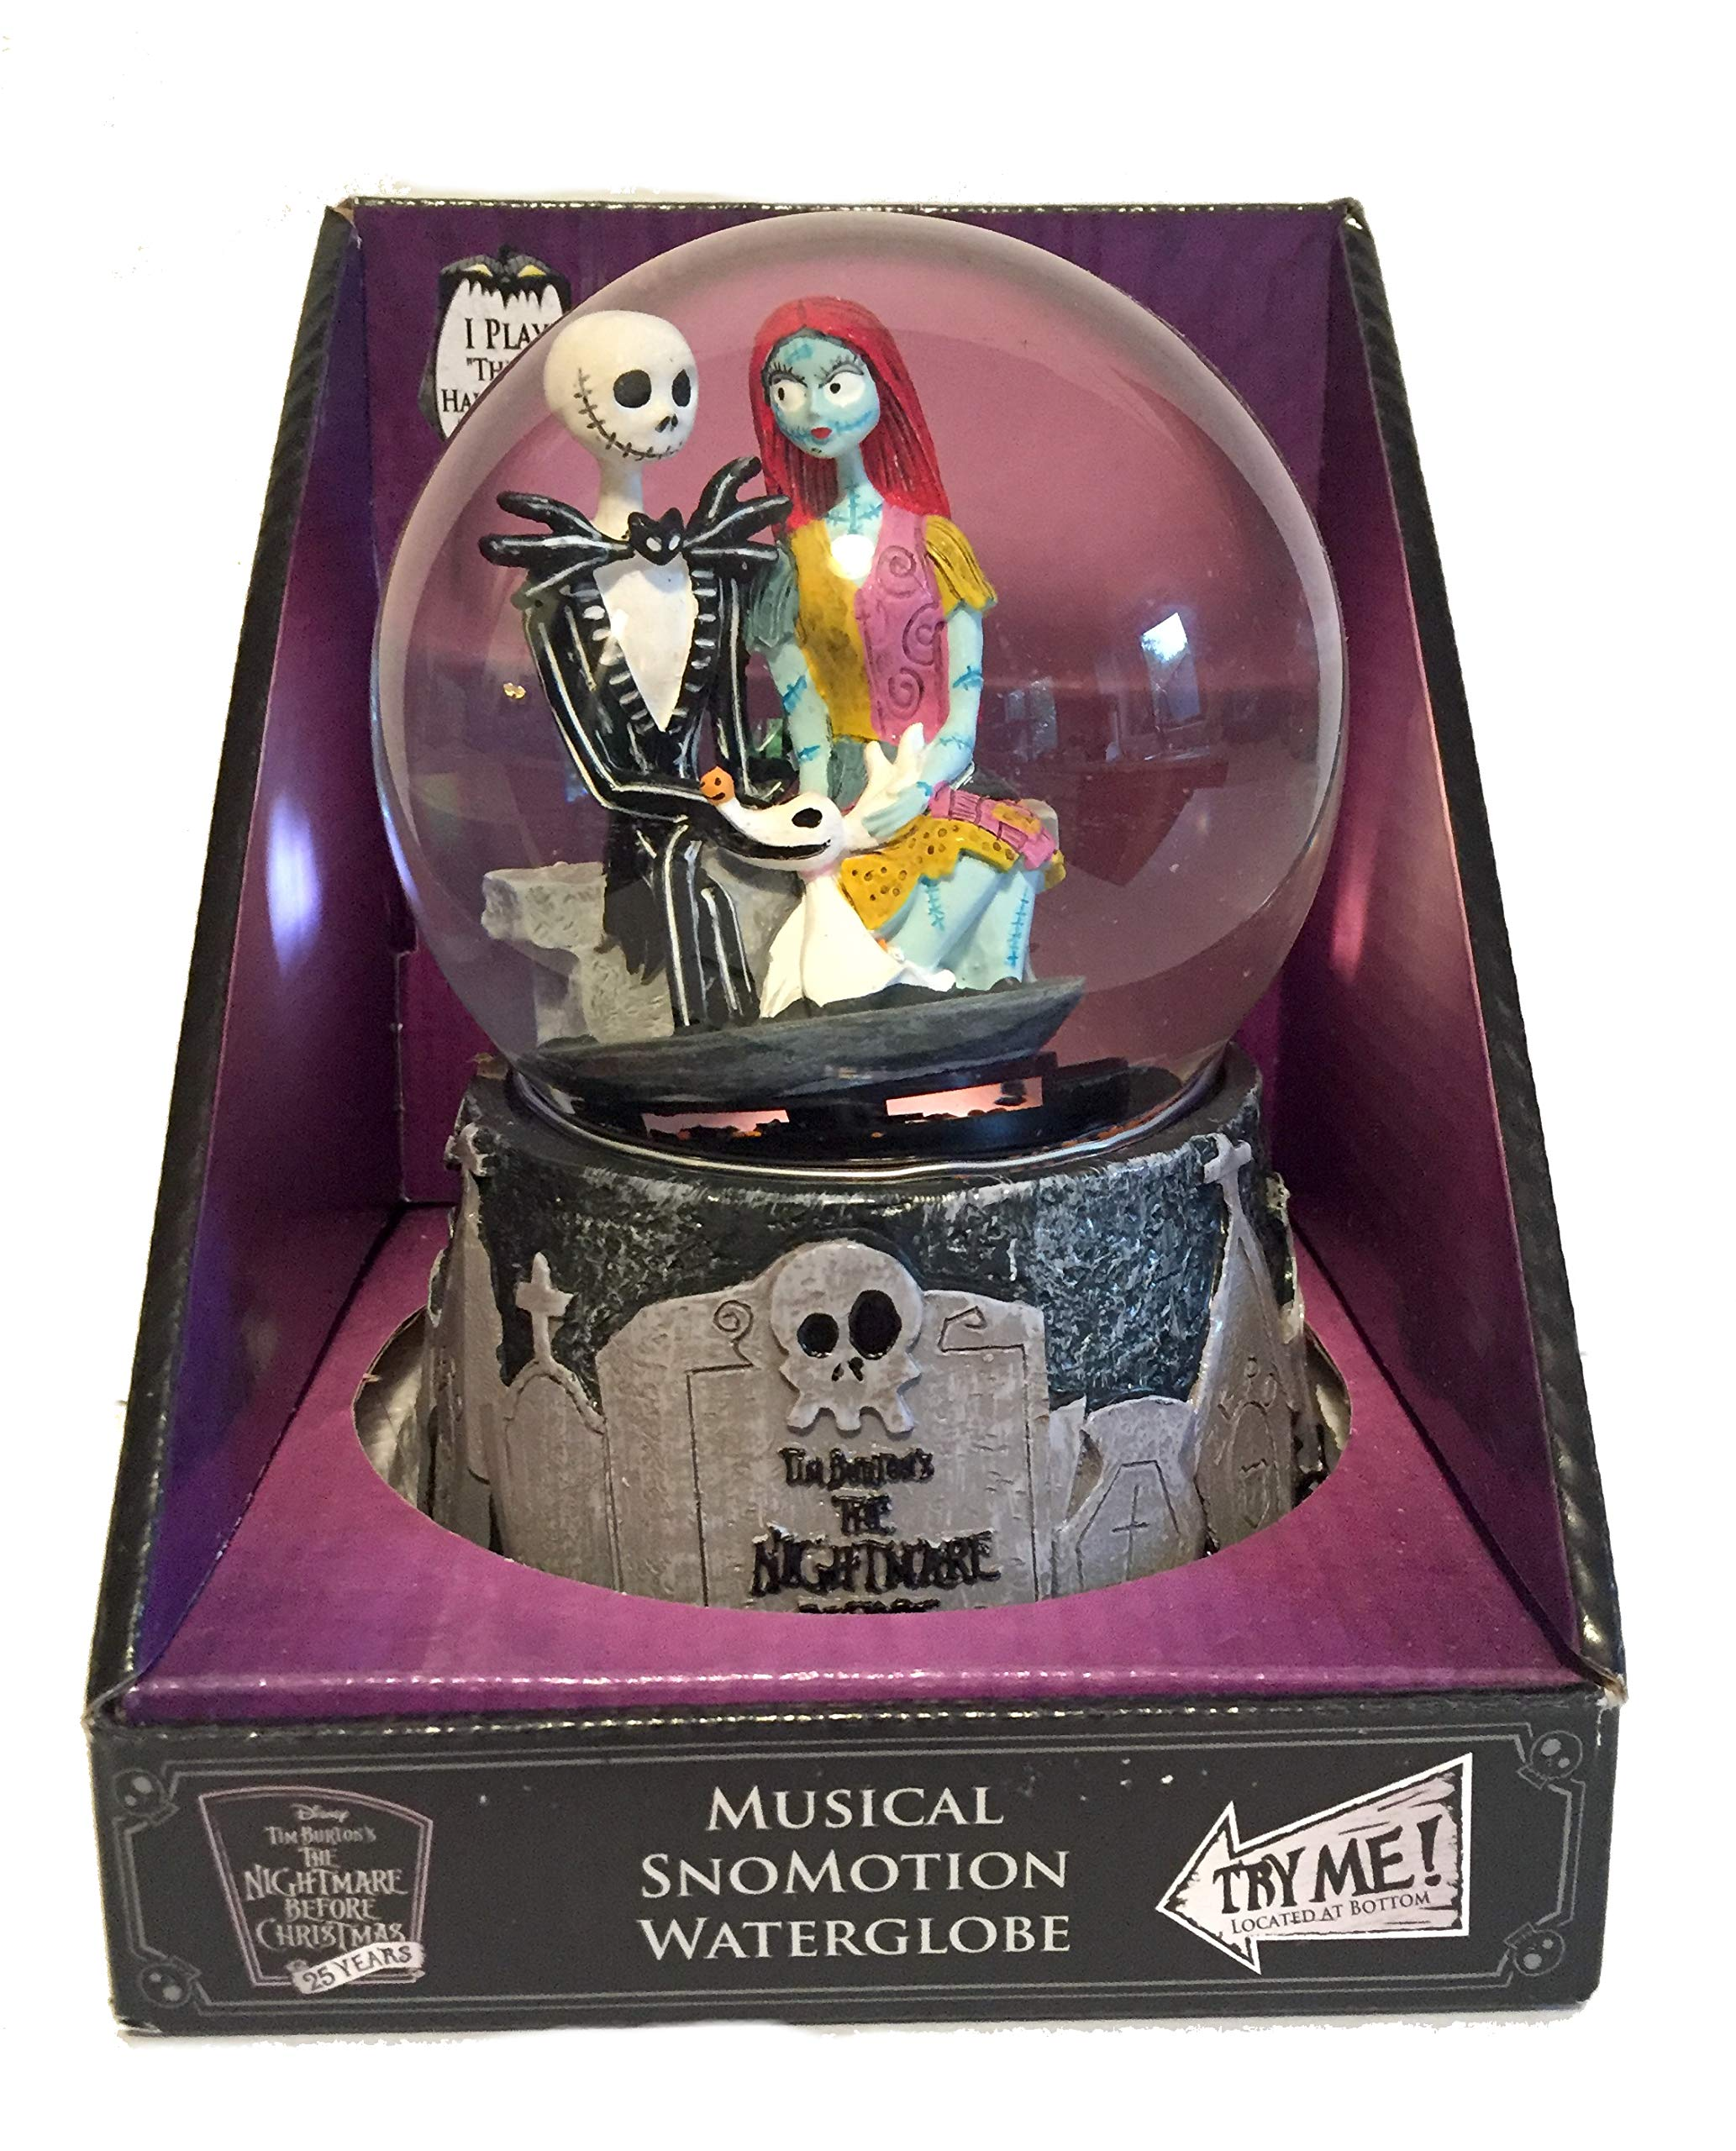 The Nightmare Before Christmas Jack Skellington, Sally and Zero Halloween Musical SnoMotion Waterglobe Disney's 25 Years